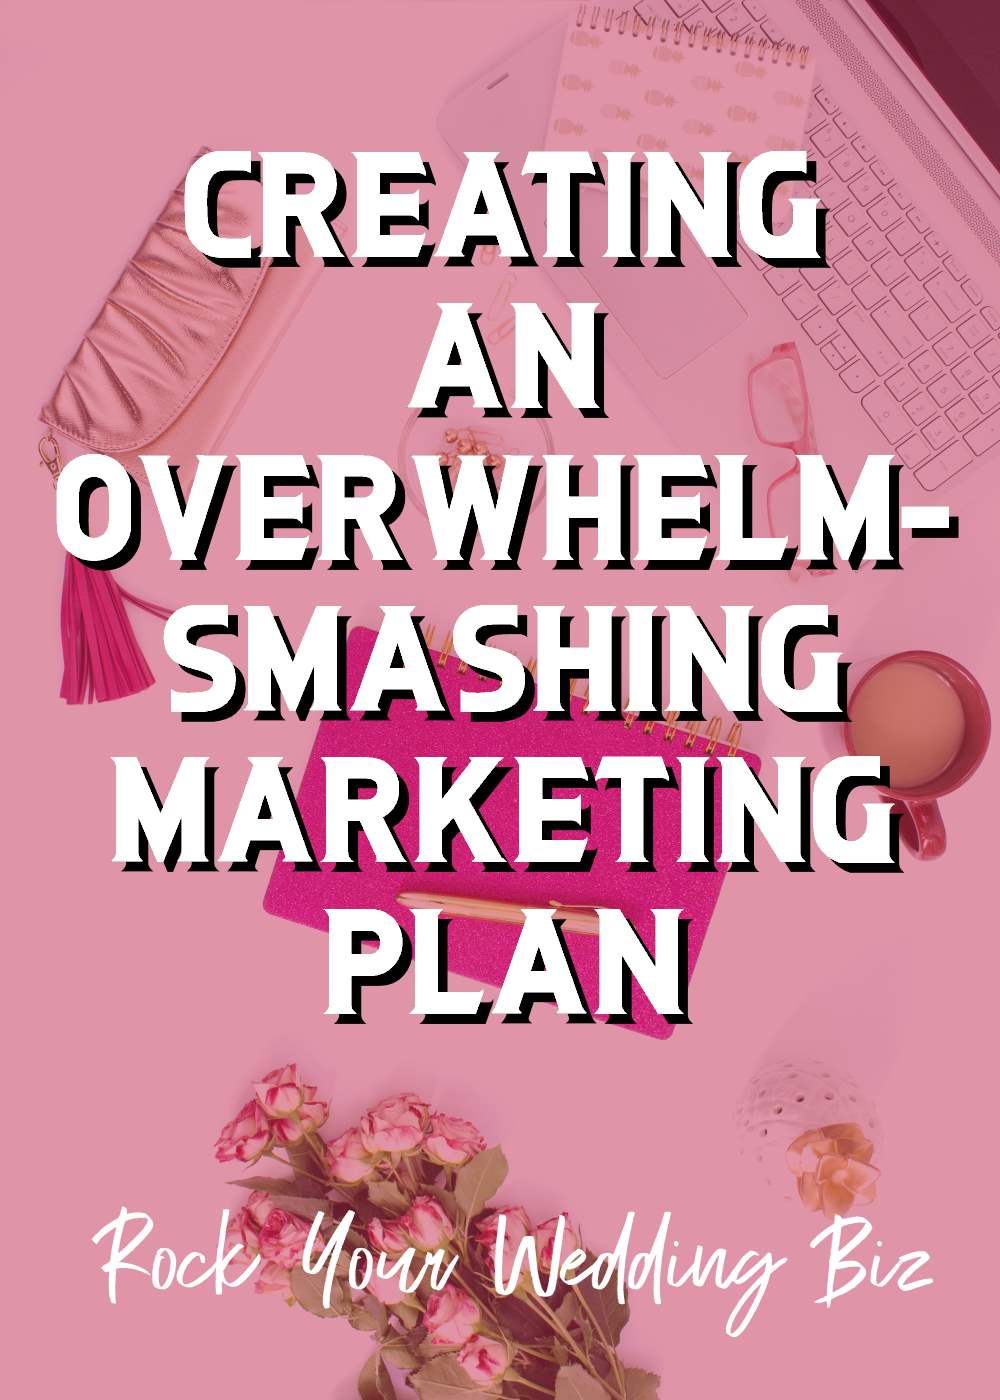 Episode 45: Creating an Overwhelm-Smashing Marketing Plan